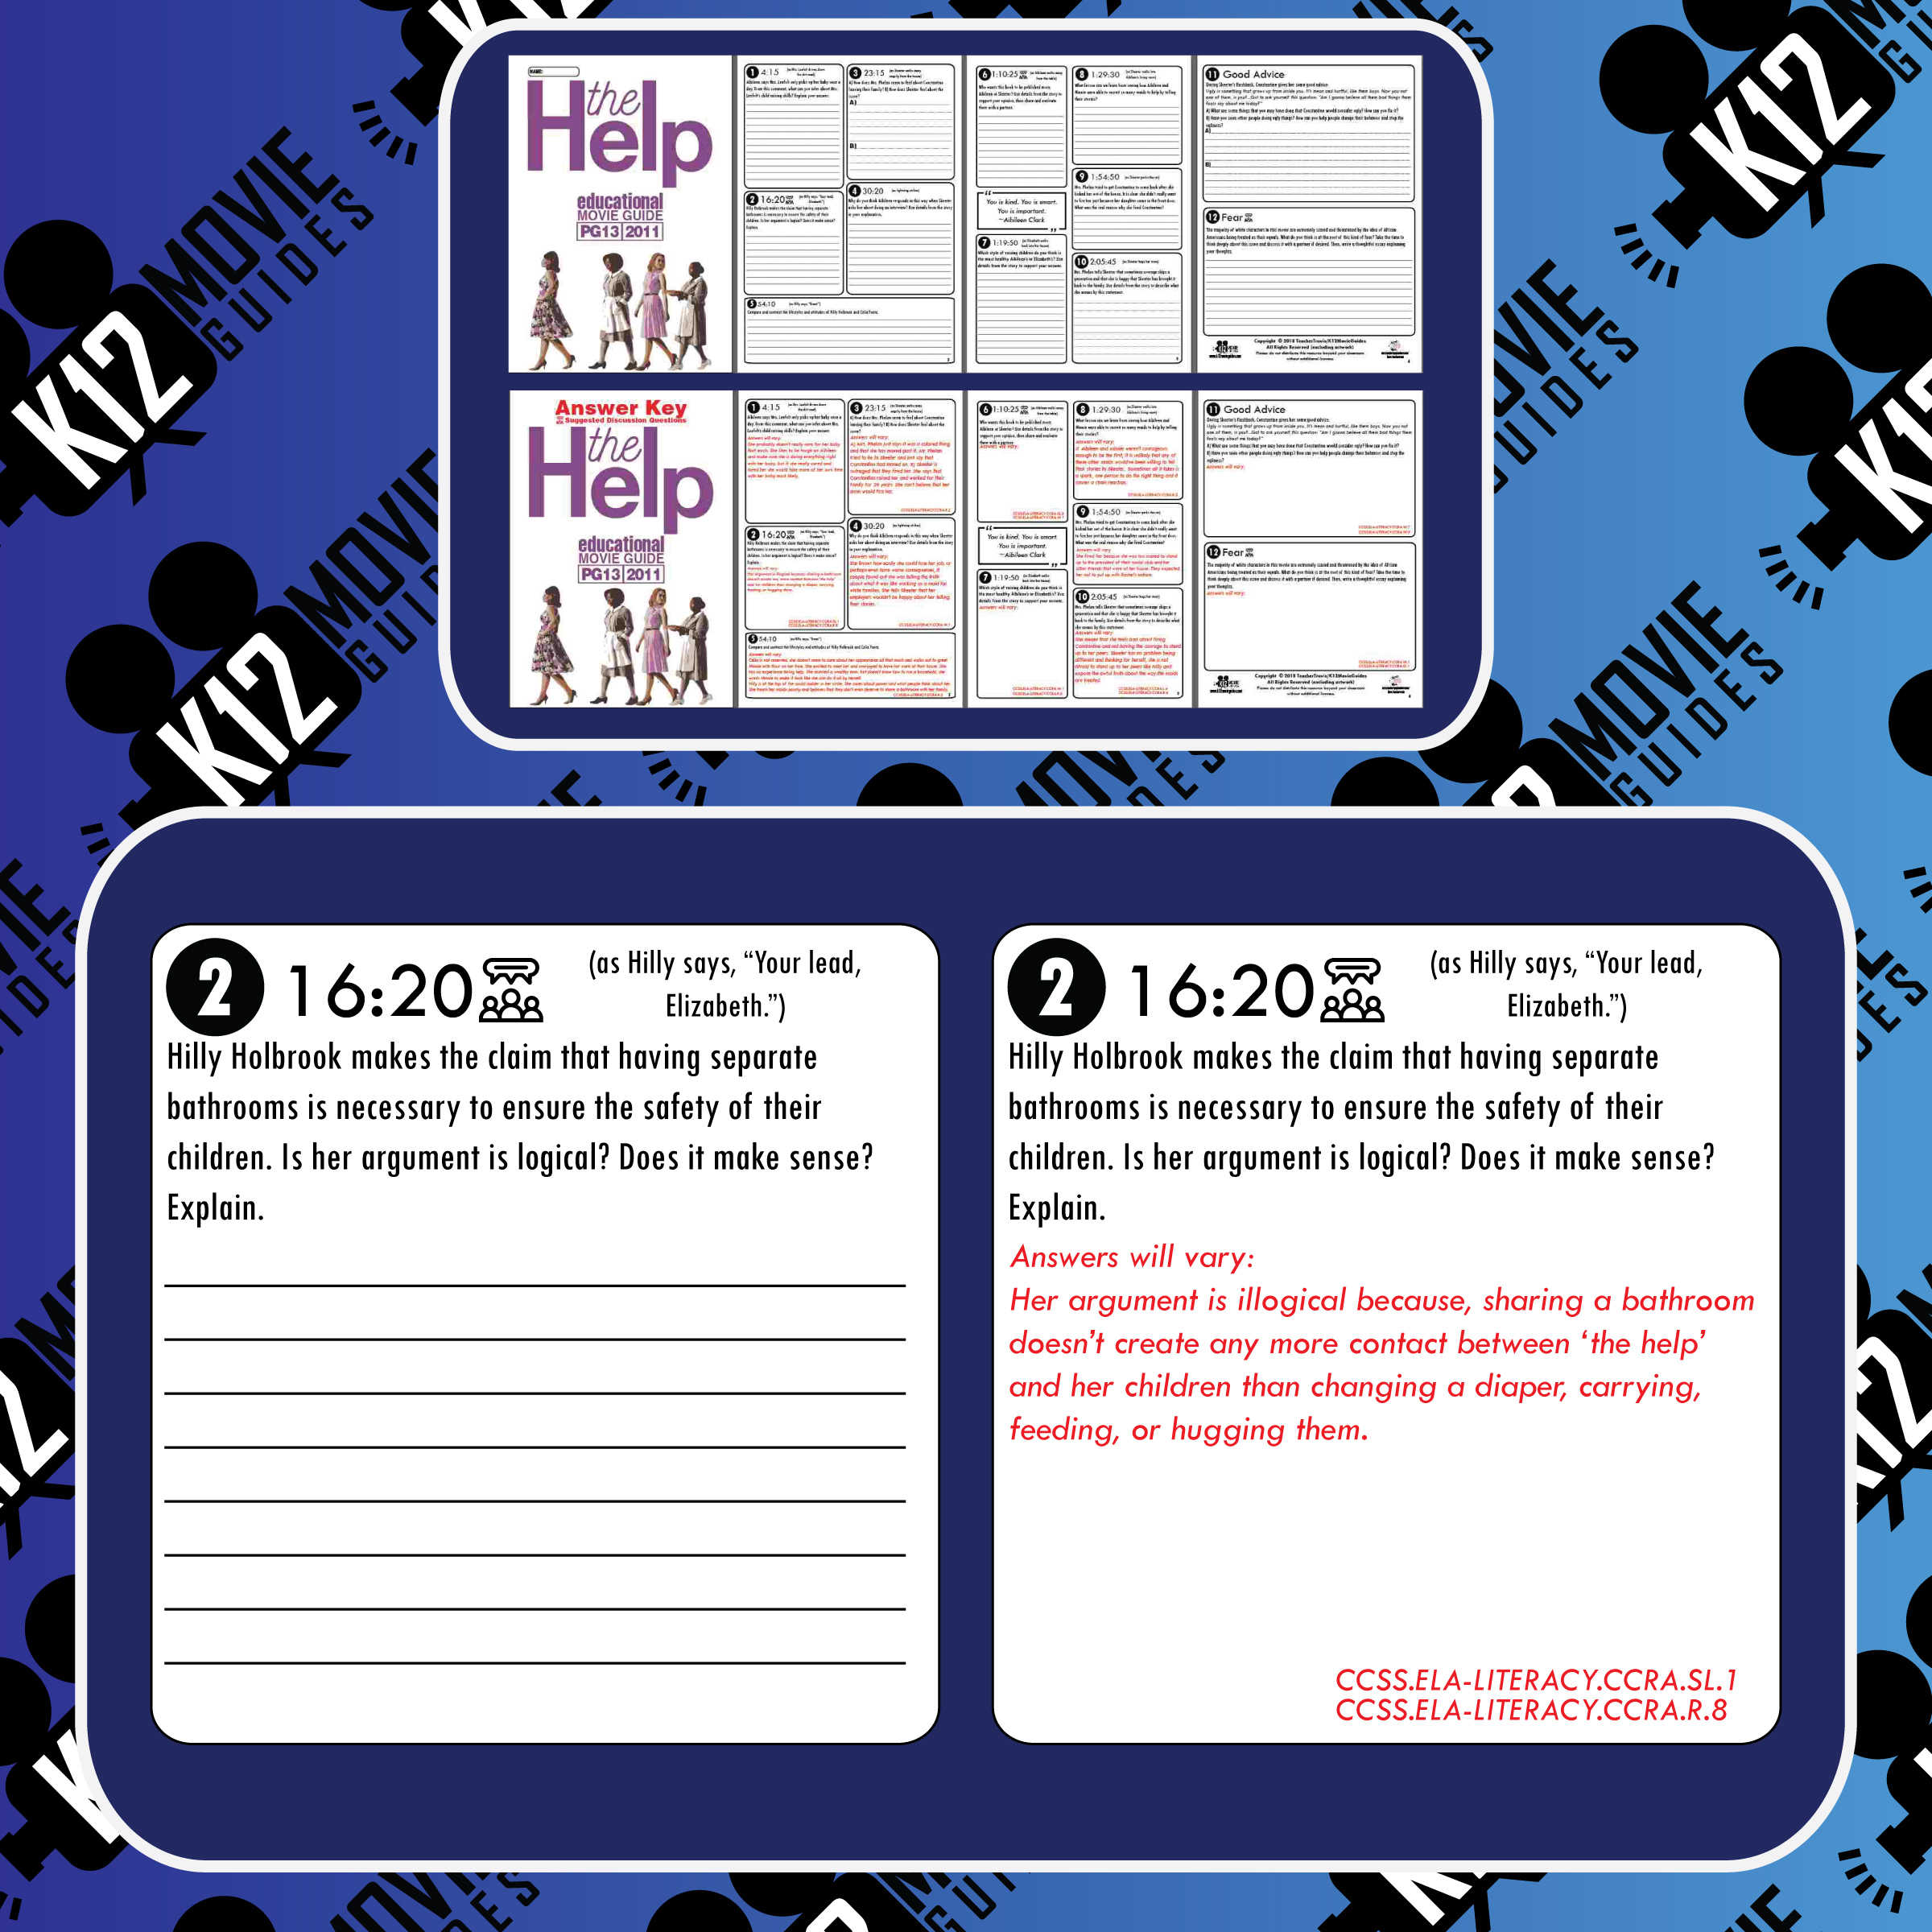 The Help Movie Viewing Guide | Questions | Worksheet | Google Forms (PG13 - 2011) Free Sample